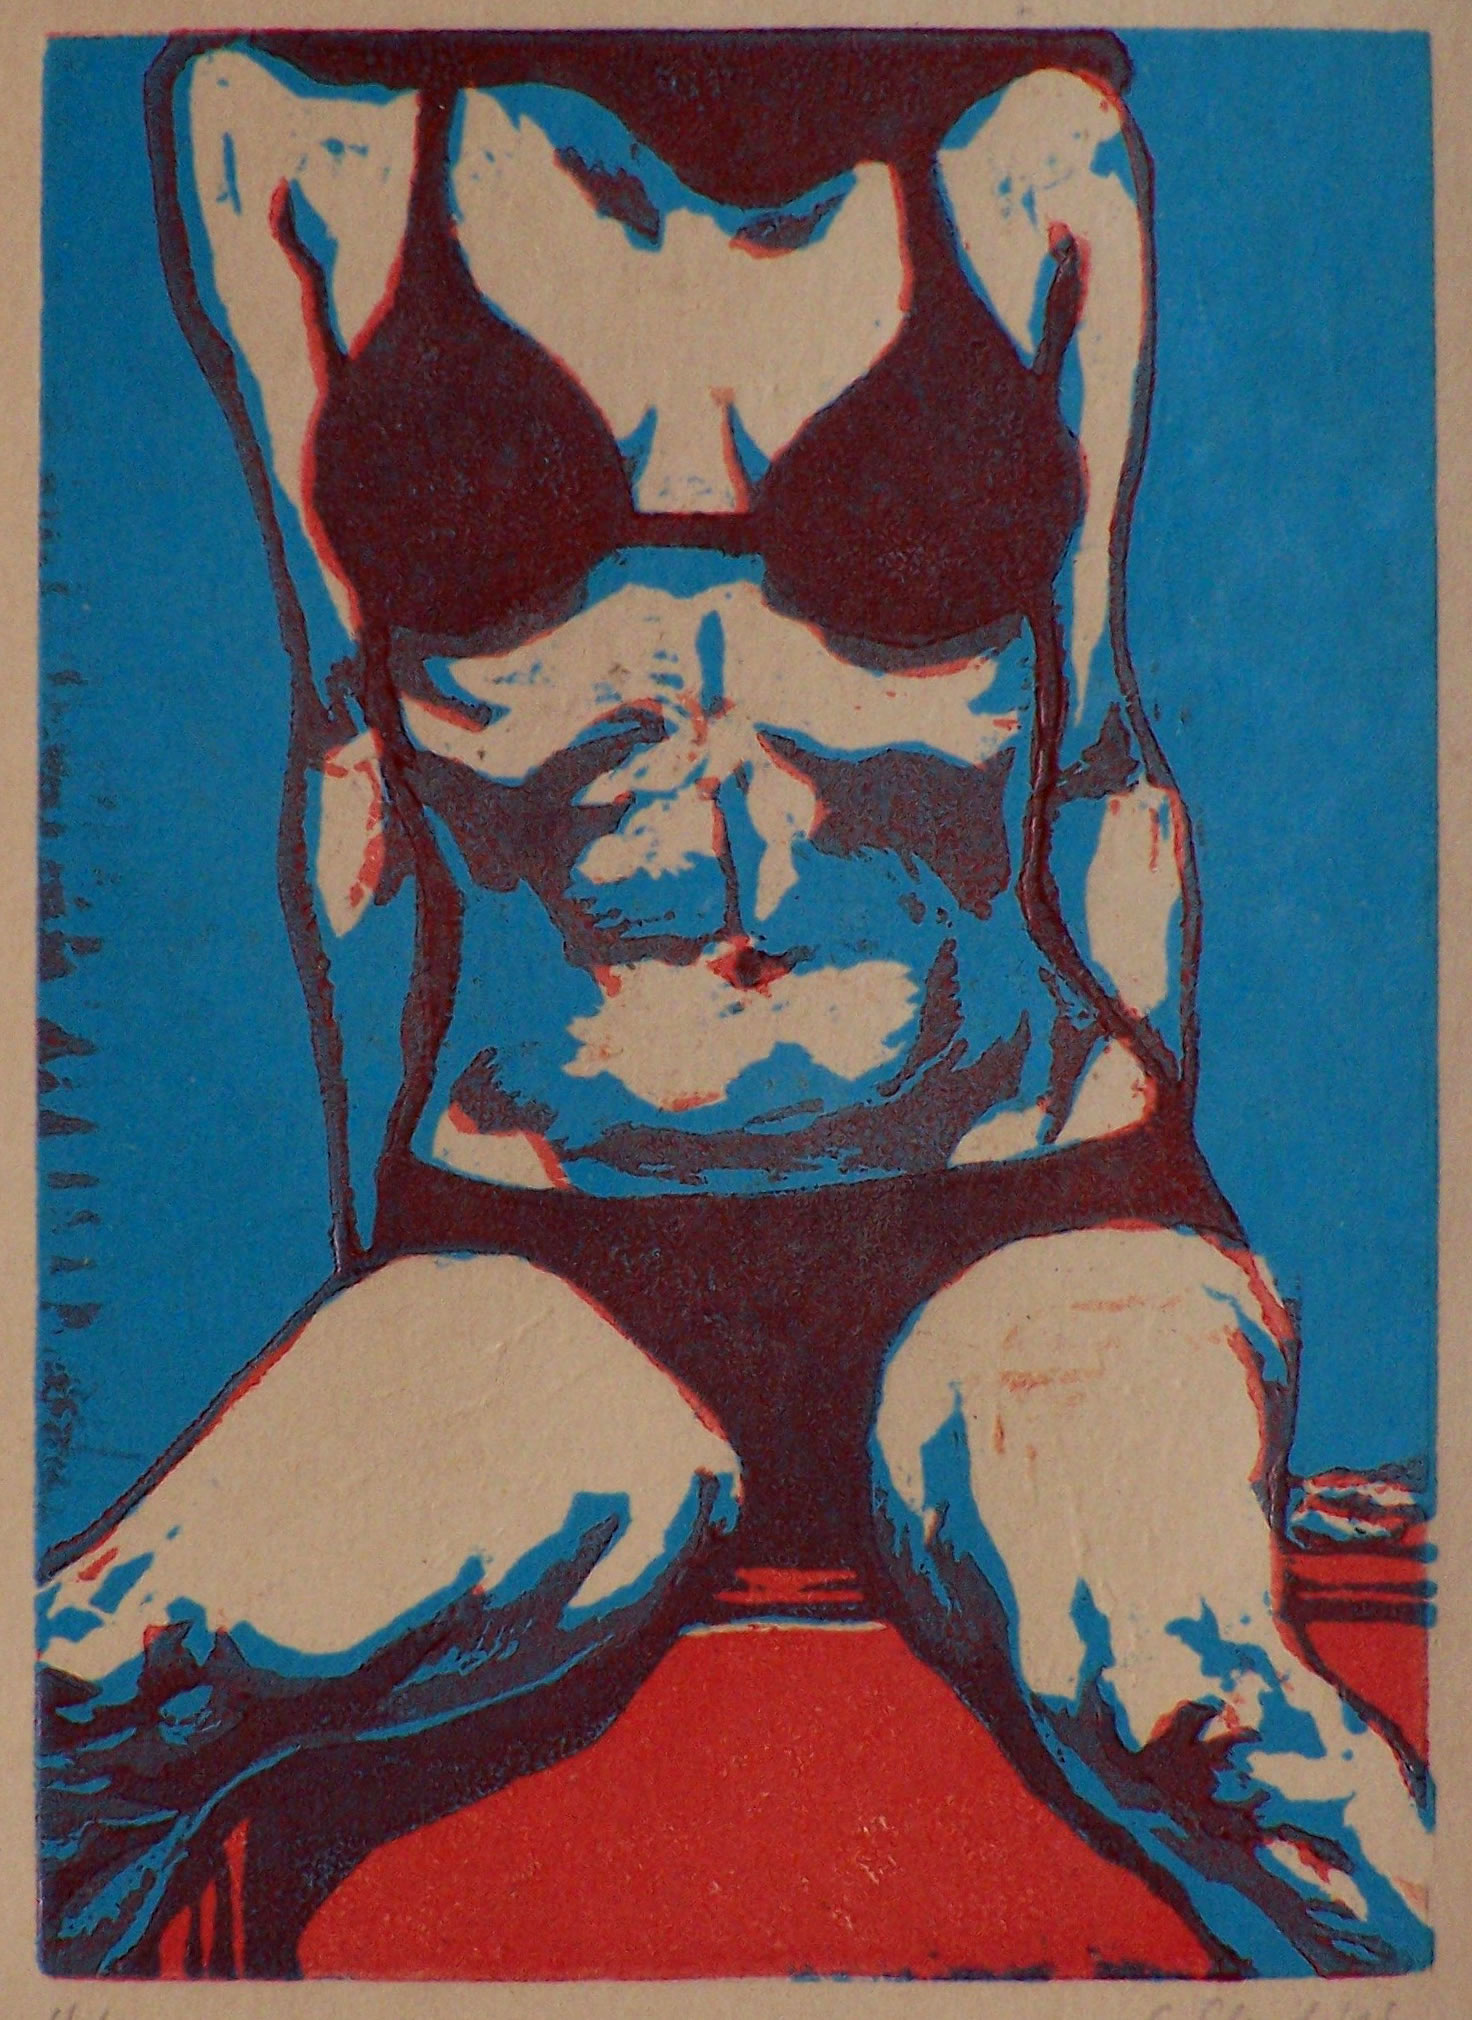 Torso, woodcut, ed.84, 143x103mm, 2005